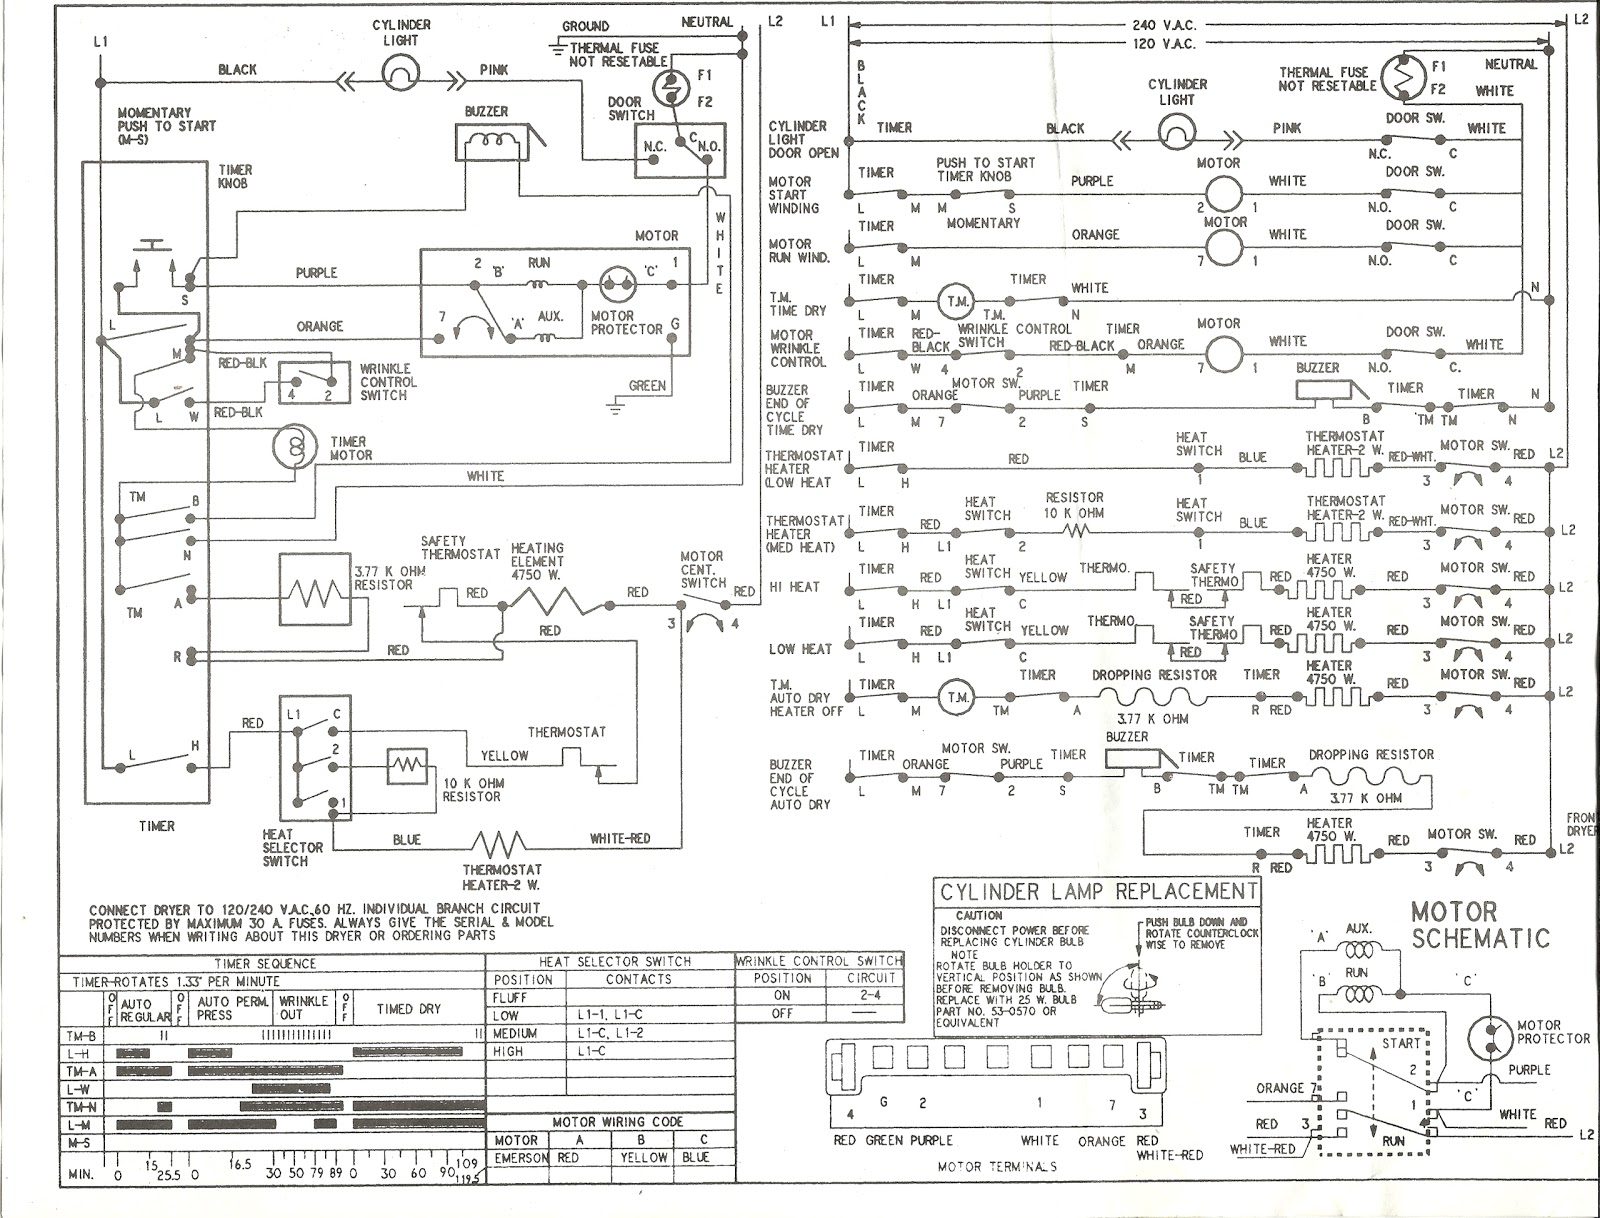 wiring diagram whirlpool dryer wiring diagram sheet wiring diagram for whirlpool dryer thermostat whirlpool dryer electrical [ 1600 x 1218 Pixel ]